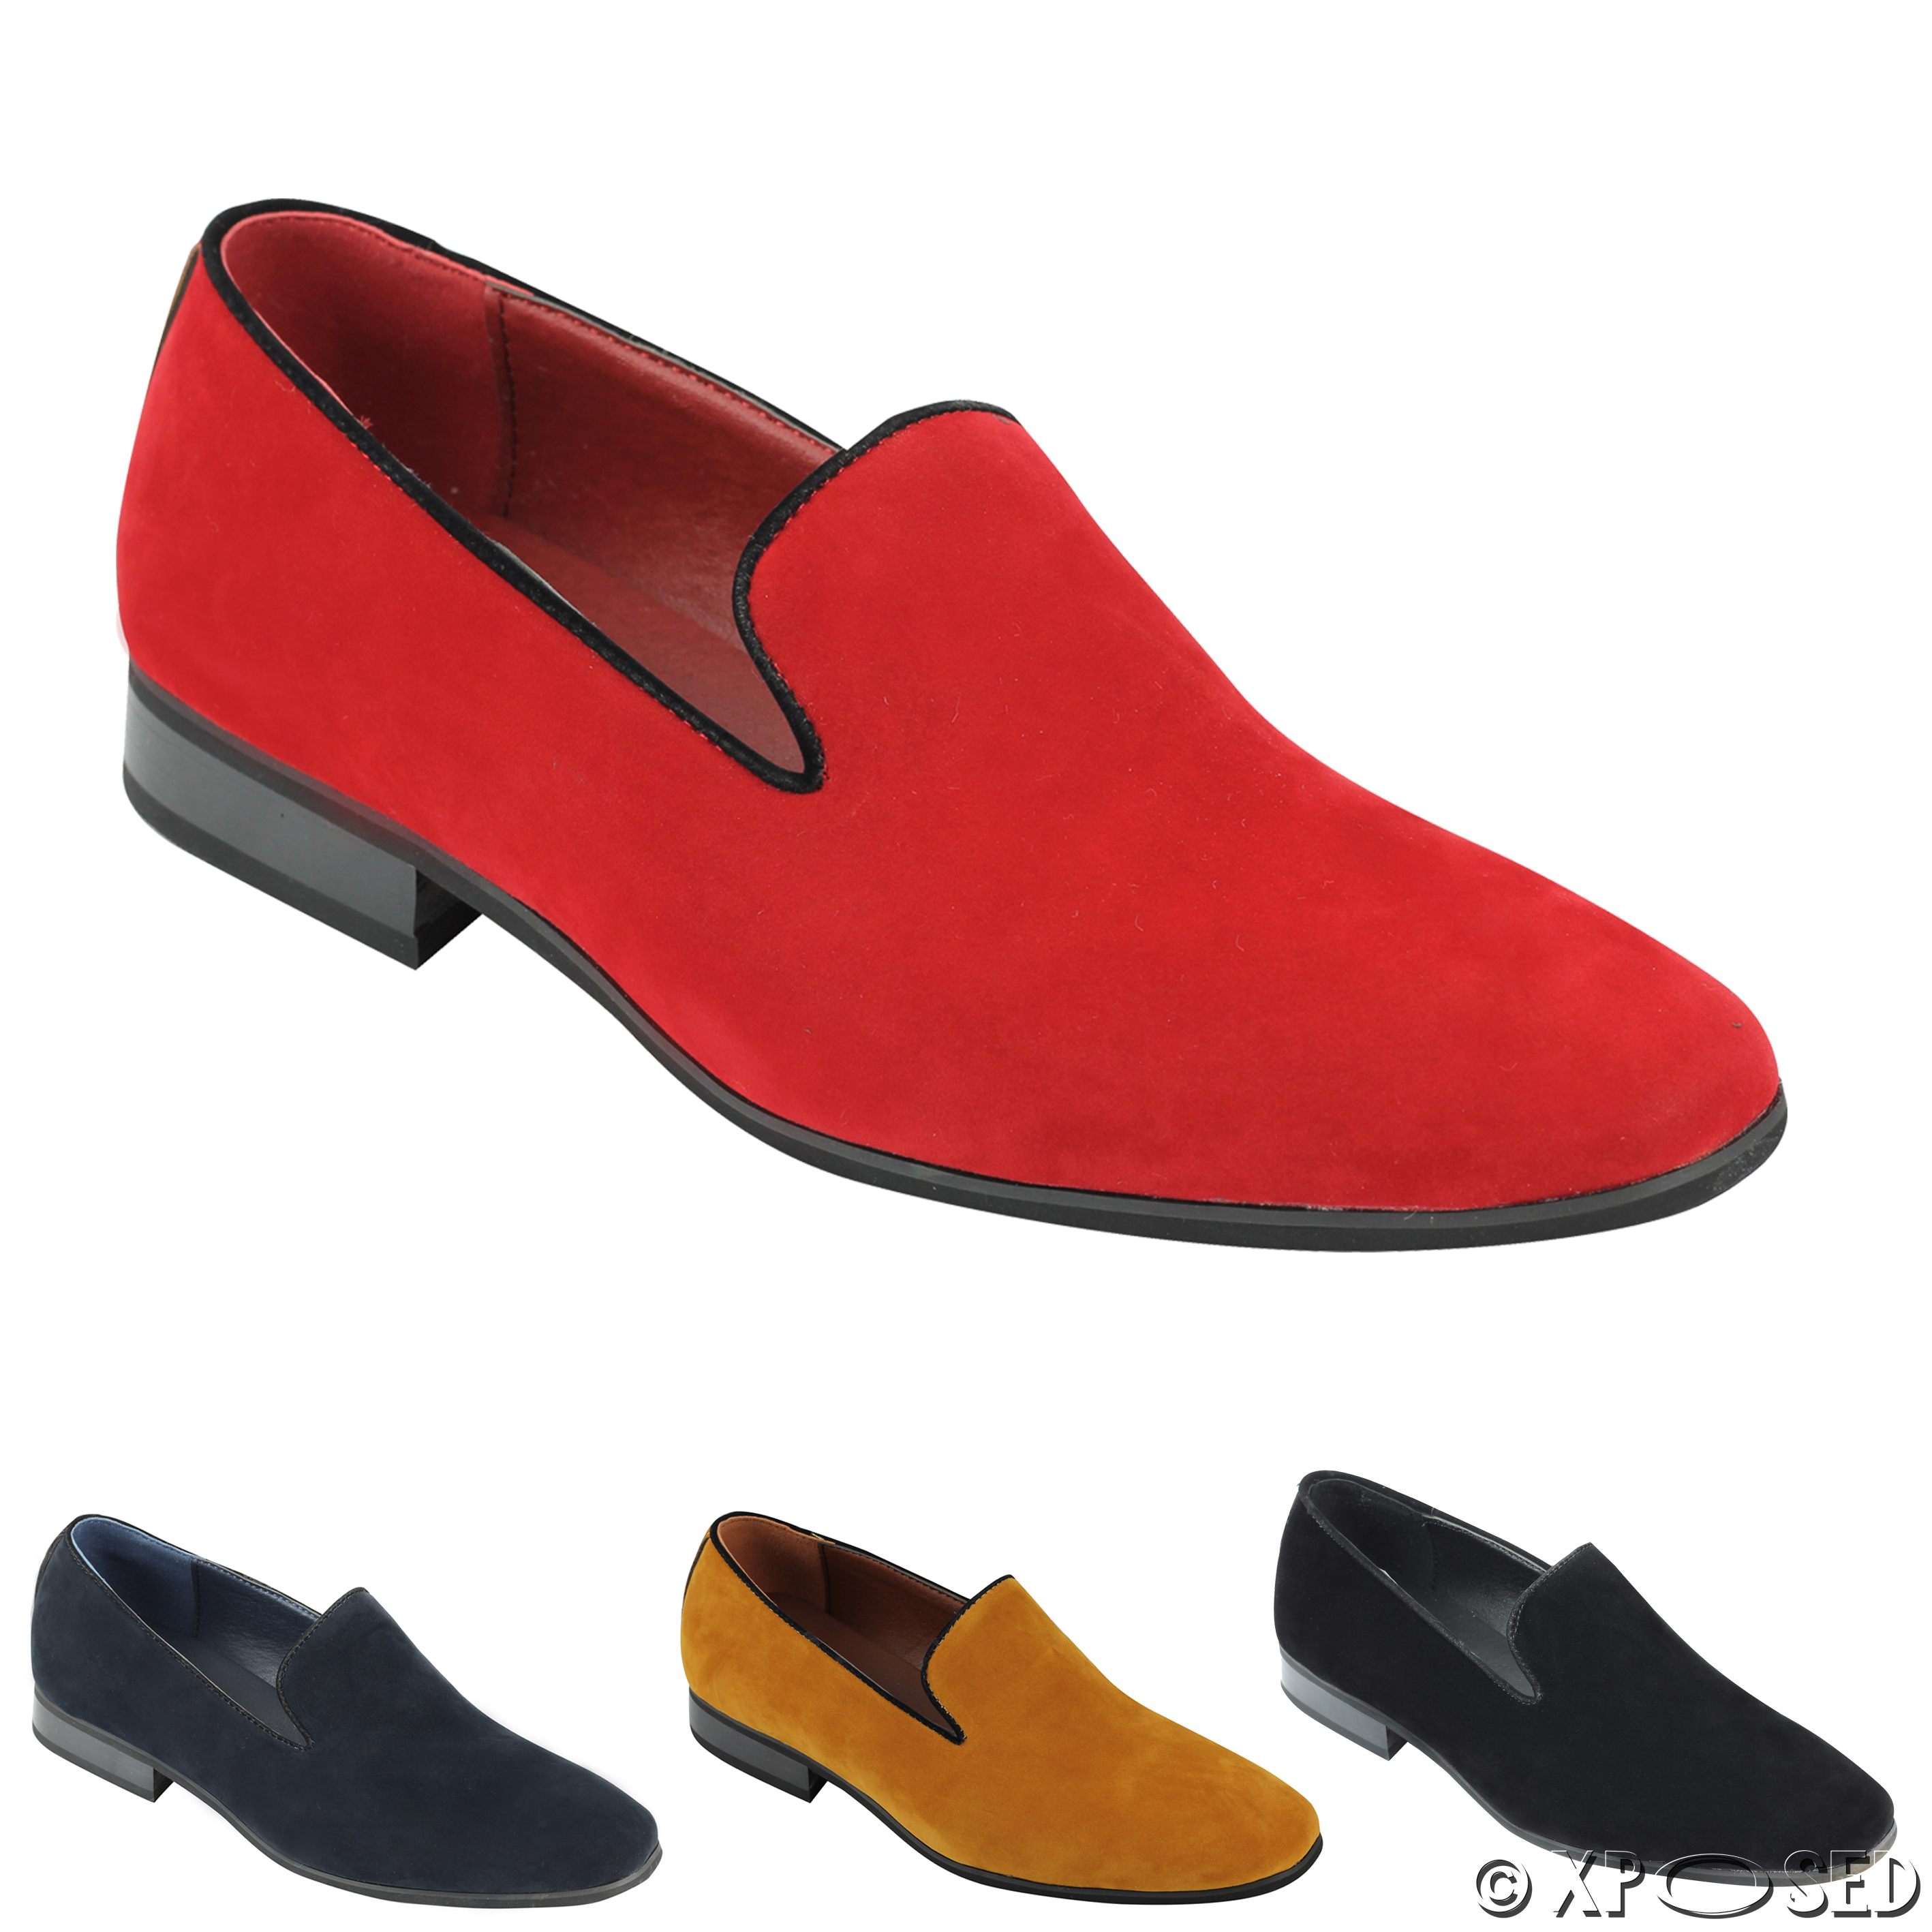 251b3bfea87f Details about New Mens Suede Loafers Leather Smart Casual MOD Slip on  Driving Shoes UK Size